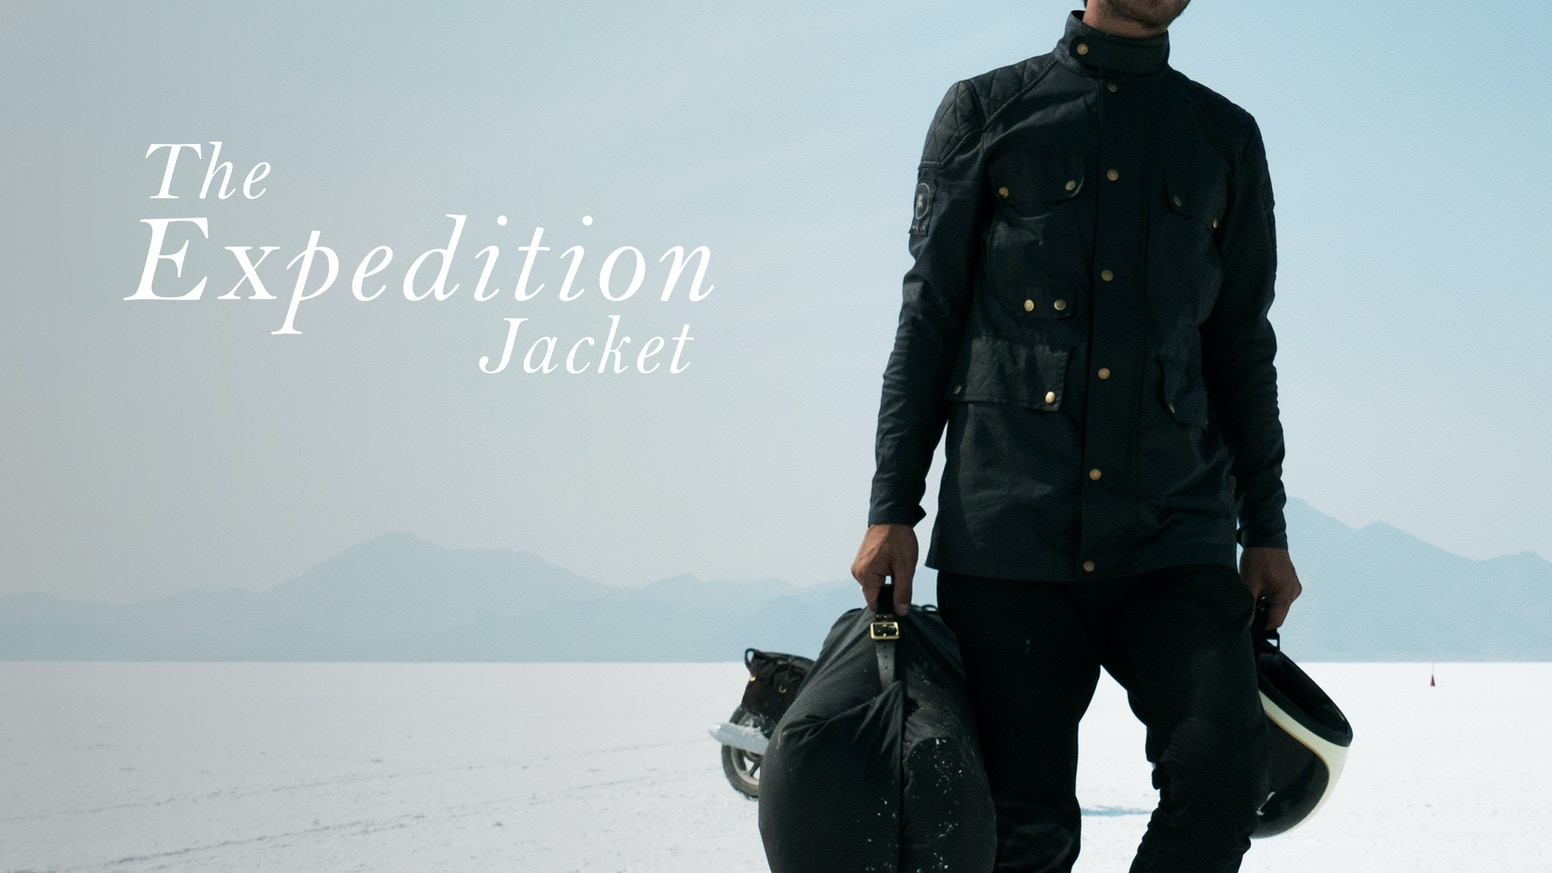 The Expedition Jacket by Malle London —Kickstarter